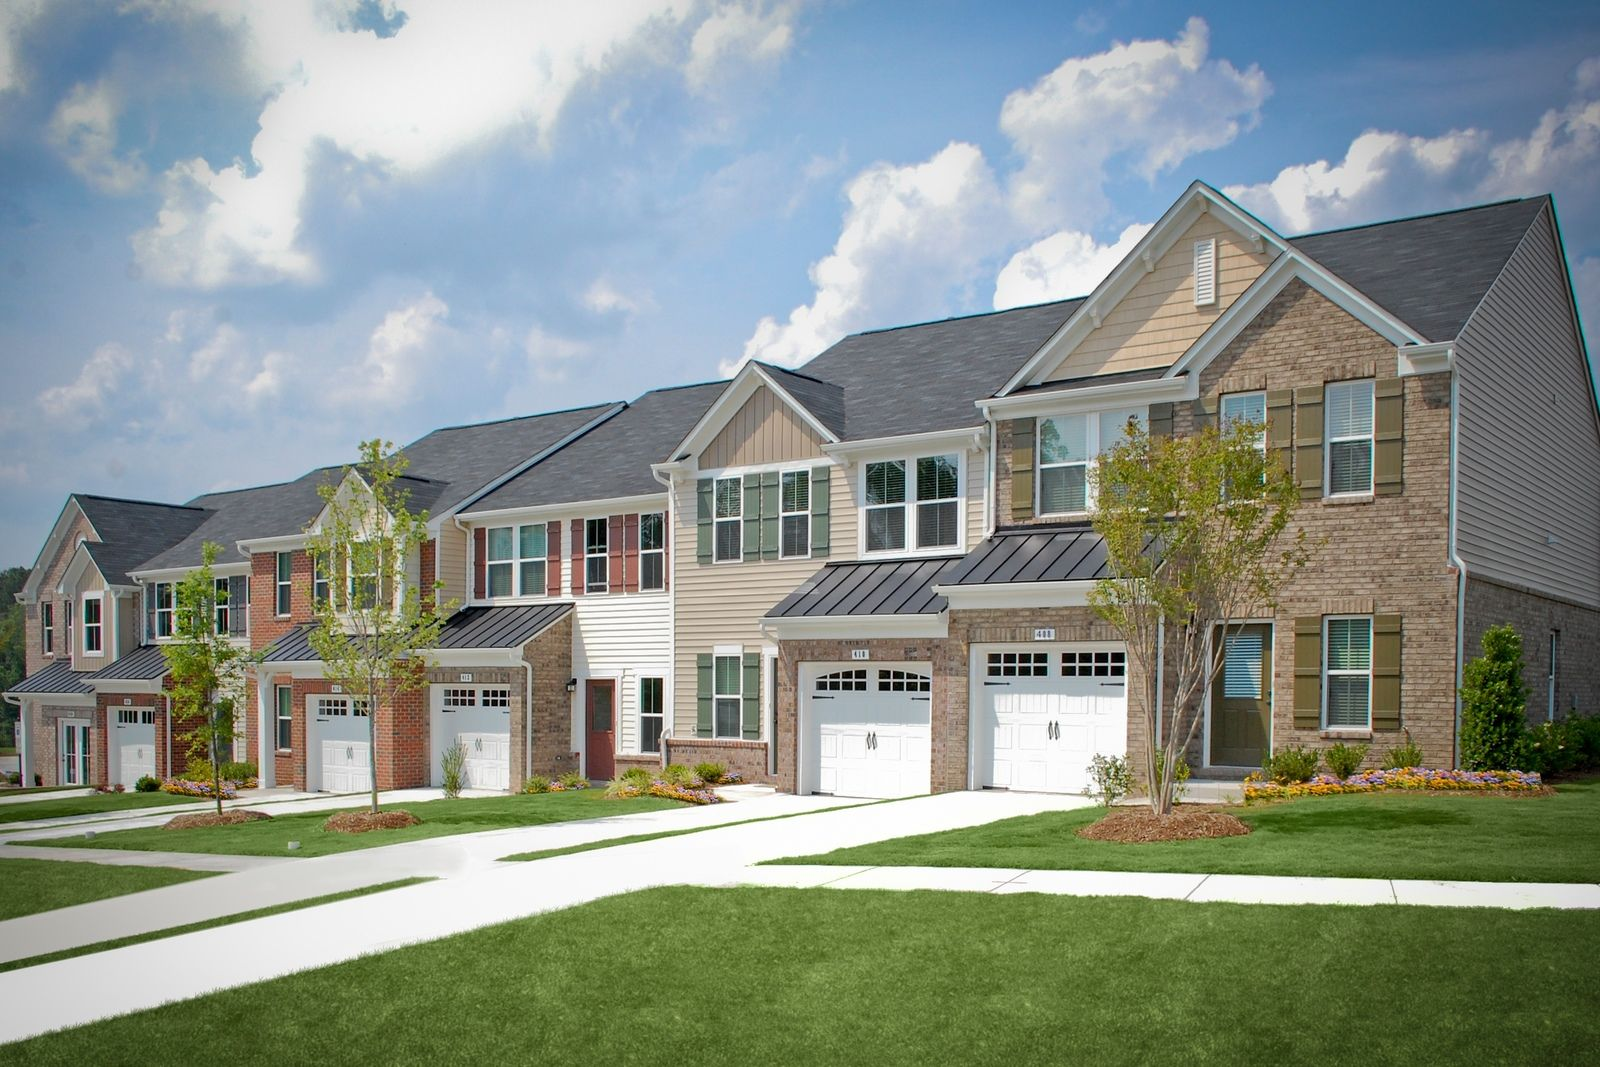 Welcome to The Preserve at Deep Creek:The only two-story luxury townhomes in a low-maintenance community with pool and clubhouse in the Appoquinimink School District, from the low $300s.Schedule your visit today.